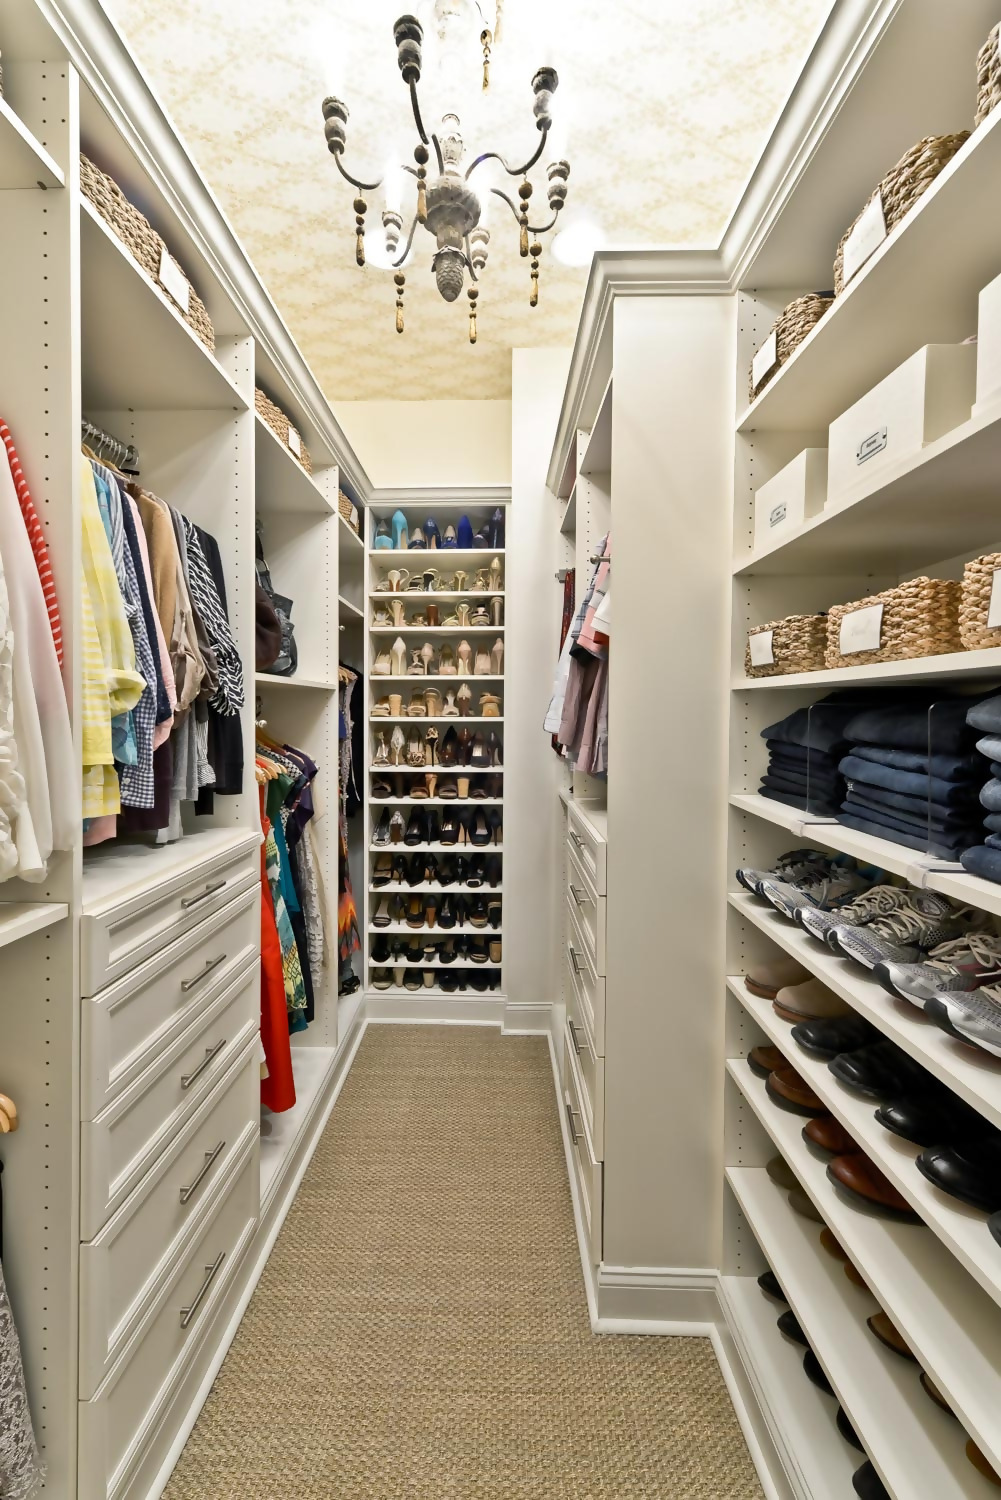 Organize Closet Drawers Thoughtfully